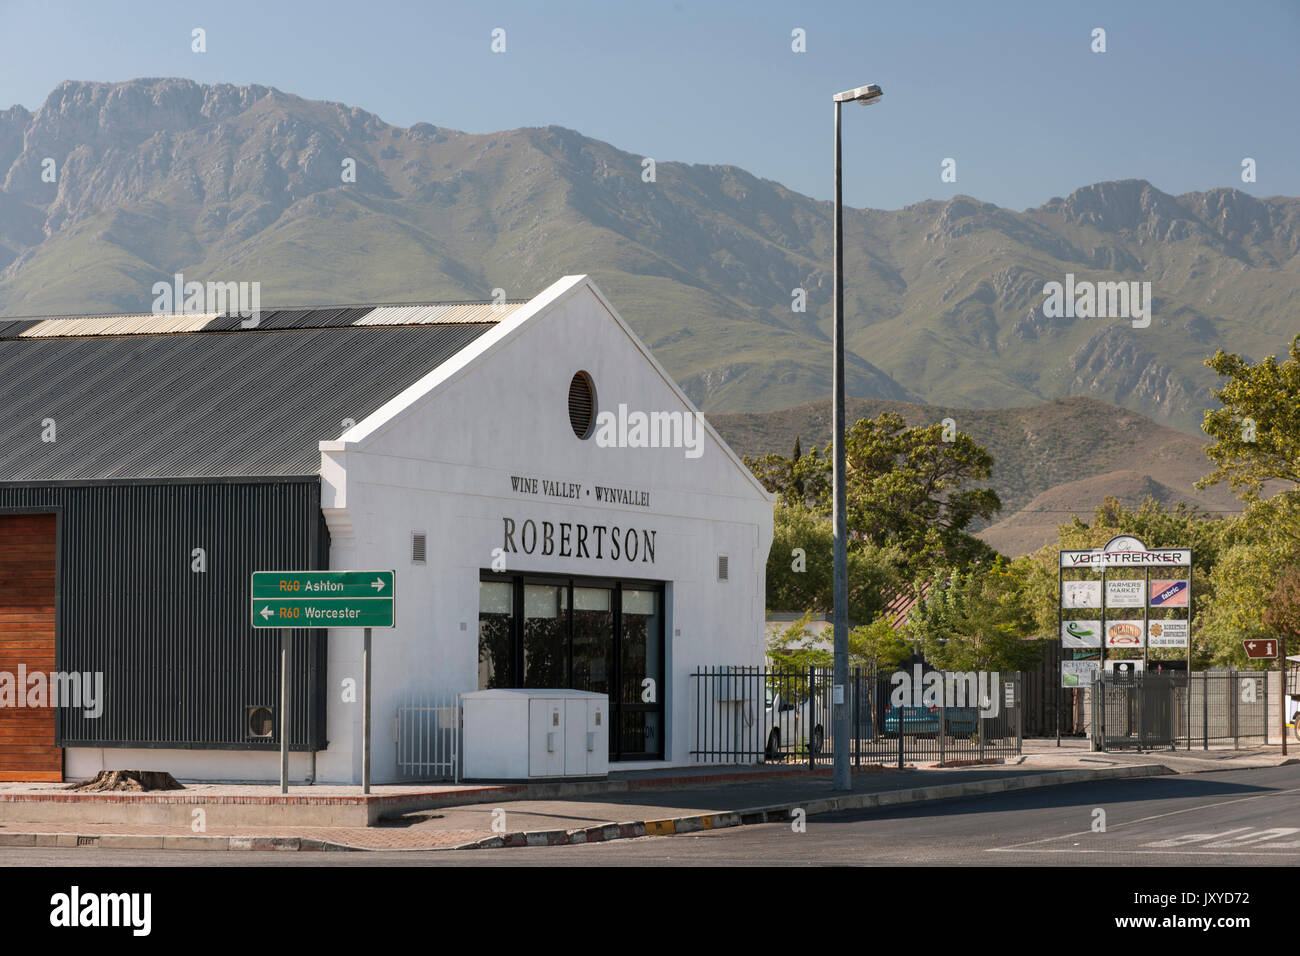 Robertson, Western Cape, South Africa. - Stock Image